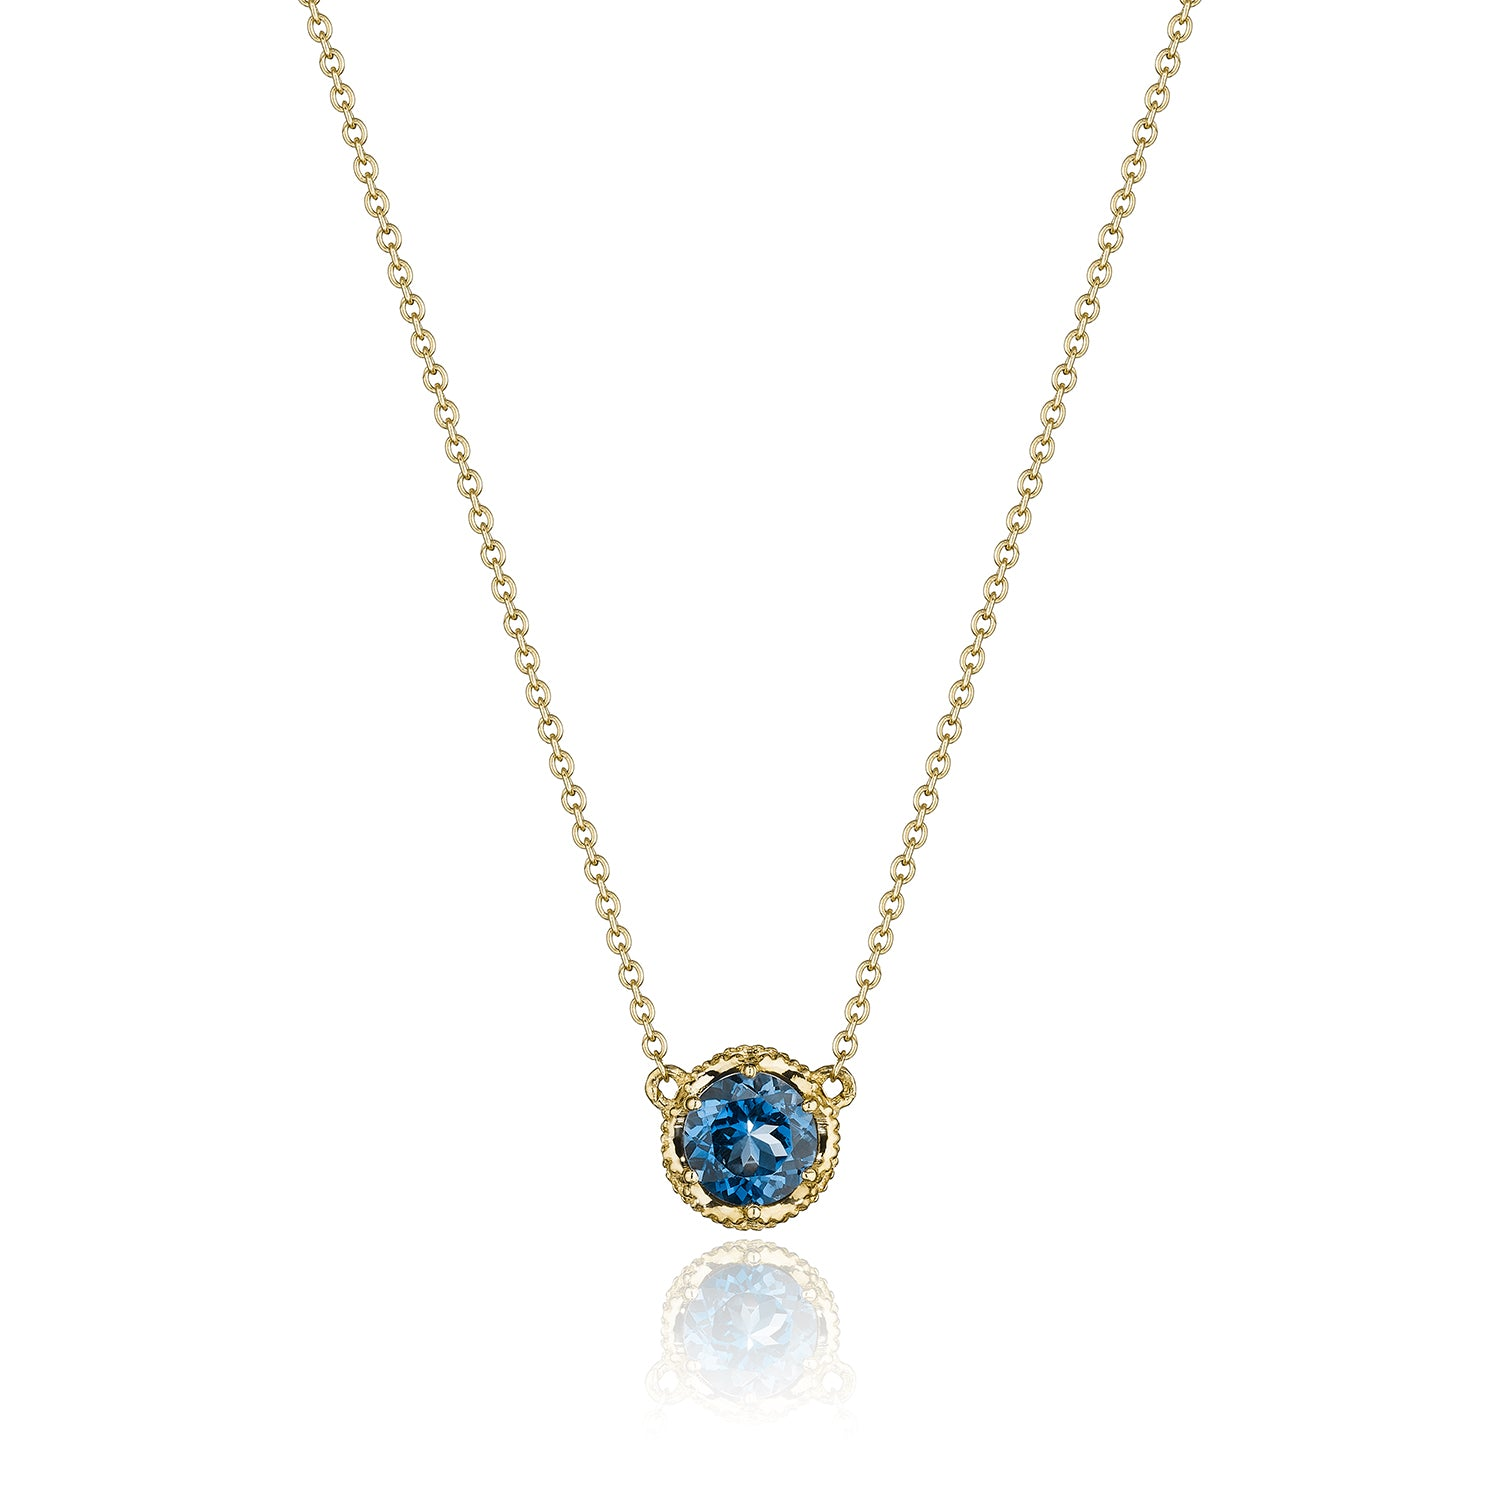 Petite Crescent Station Necklace featuring London Blue Topaz